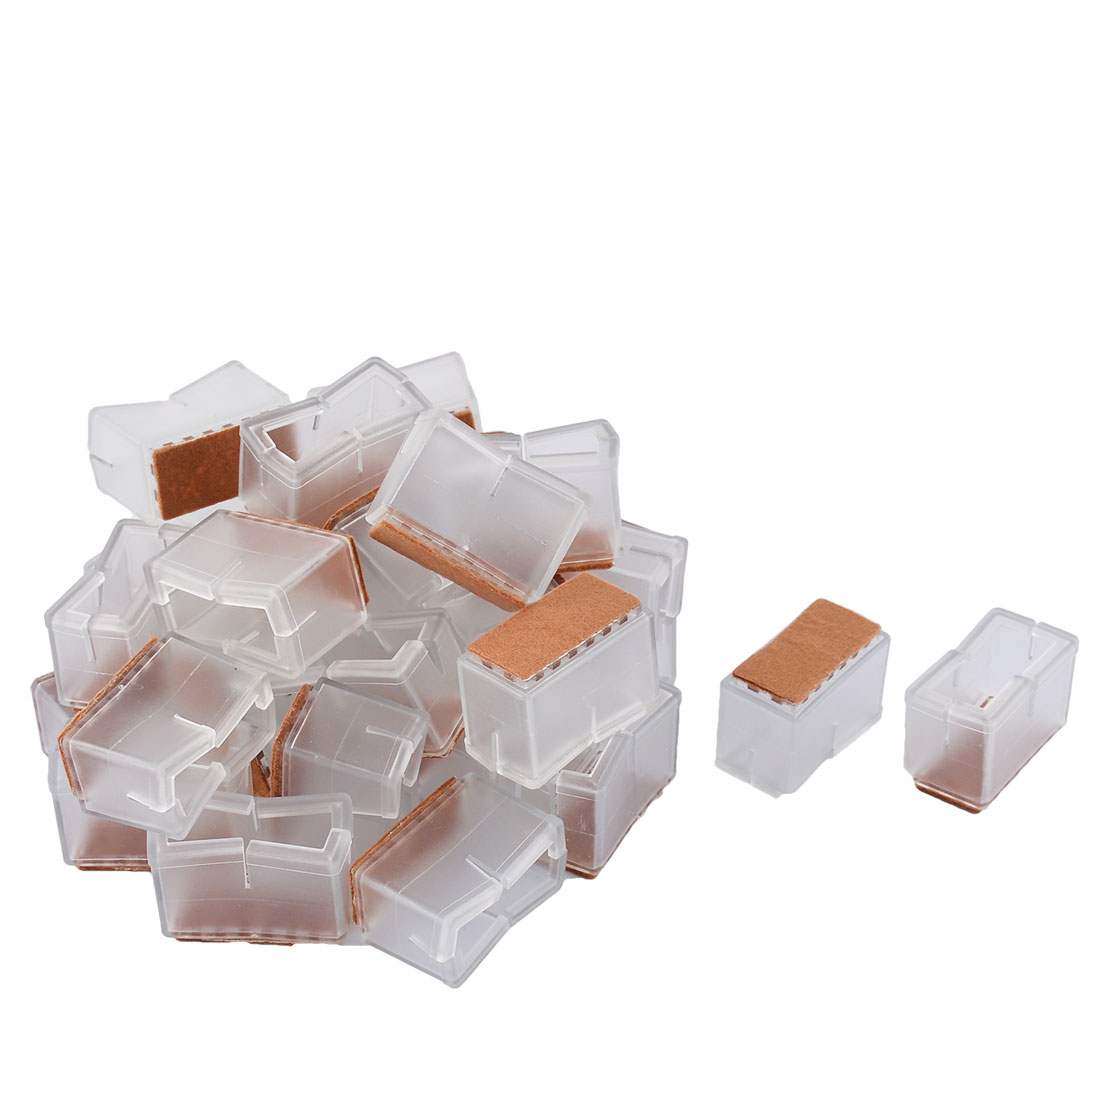 Silicone Floor Protecting Pad Table Desk Chair Leg Foot End Cap Cover Clear 4.4 x 2.4 x 3.1cm 32pcs